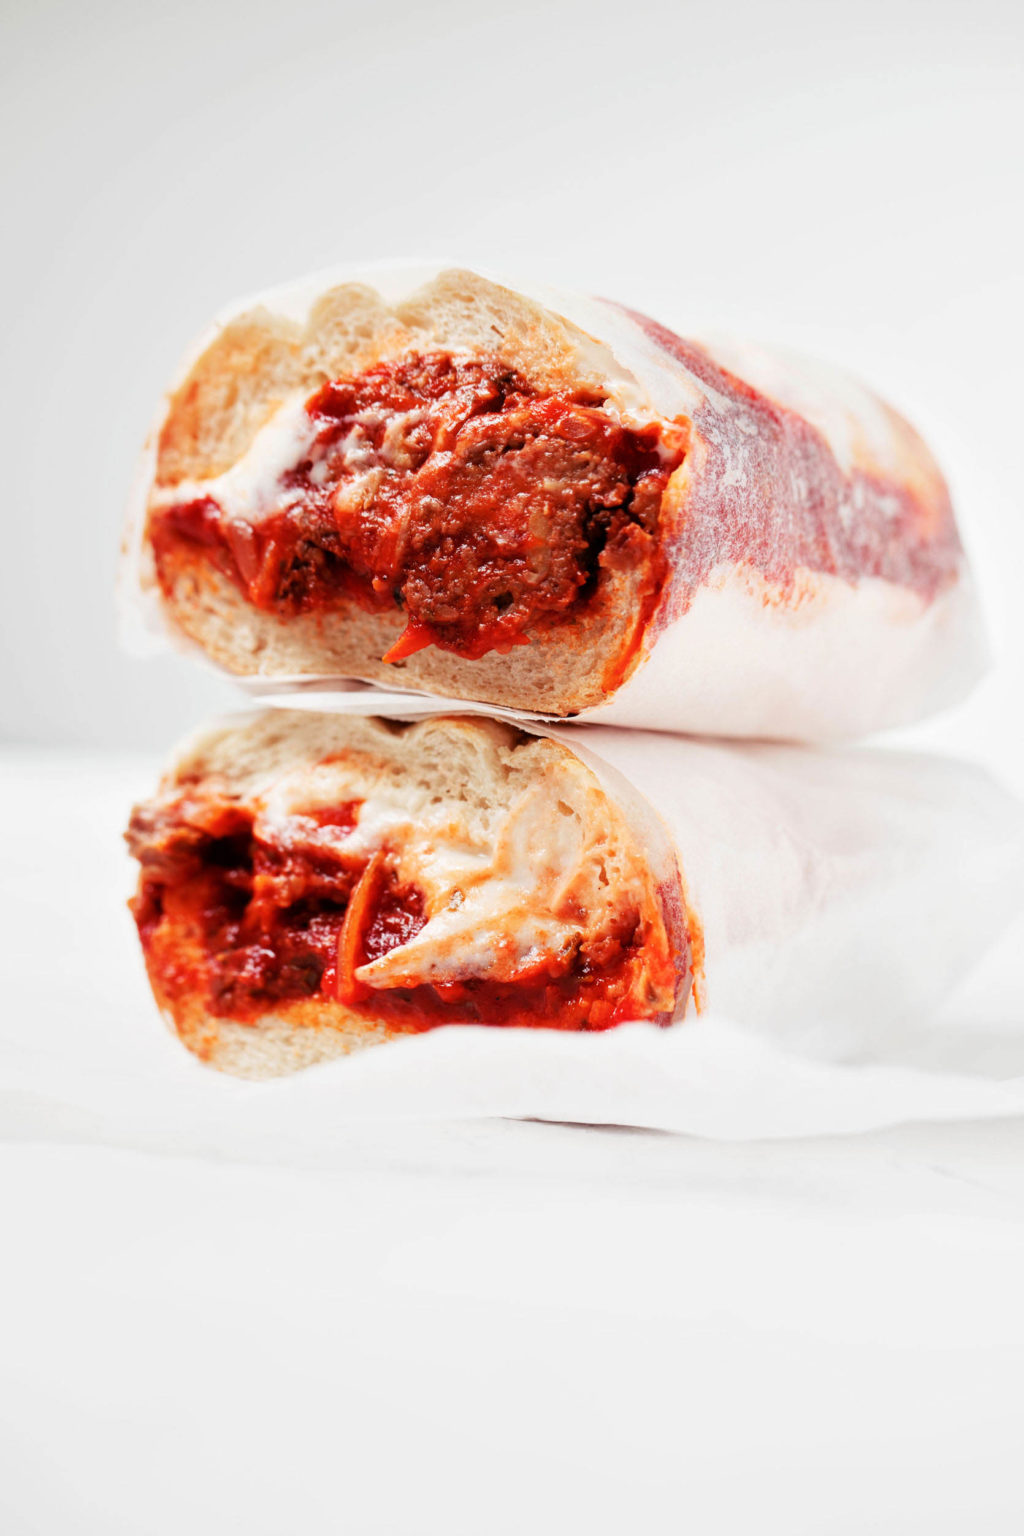 A vegan tempeh meatball sub is wrapped in parchment paper and resting on a white surface.